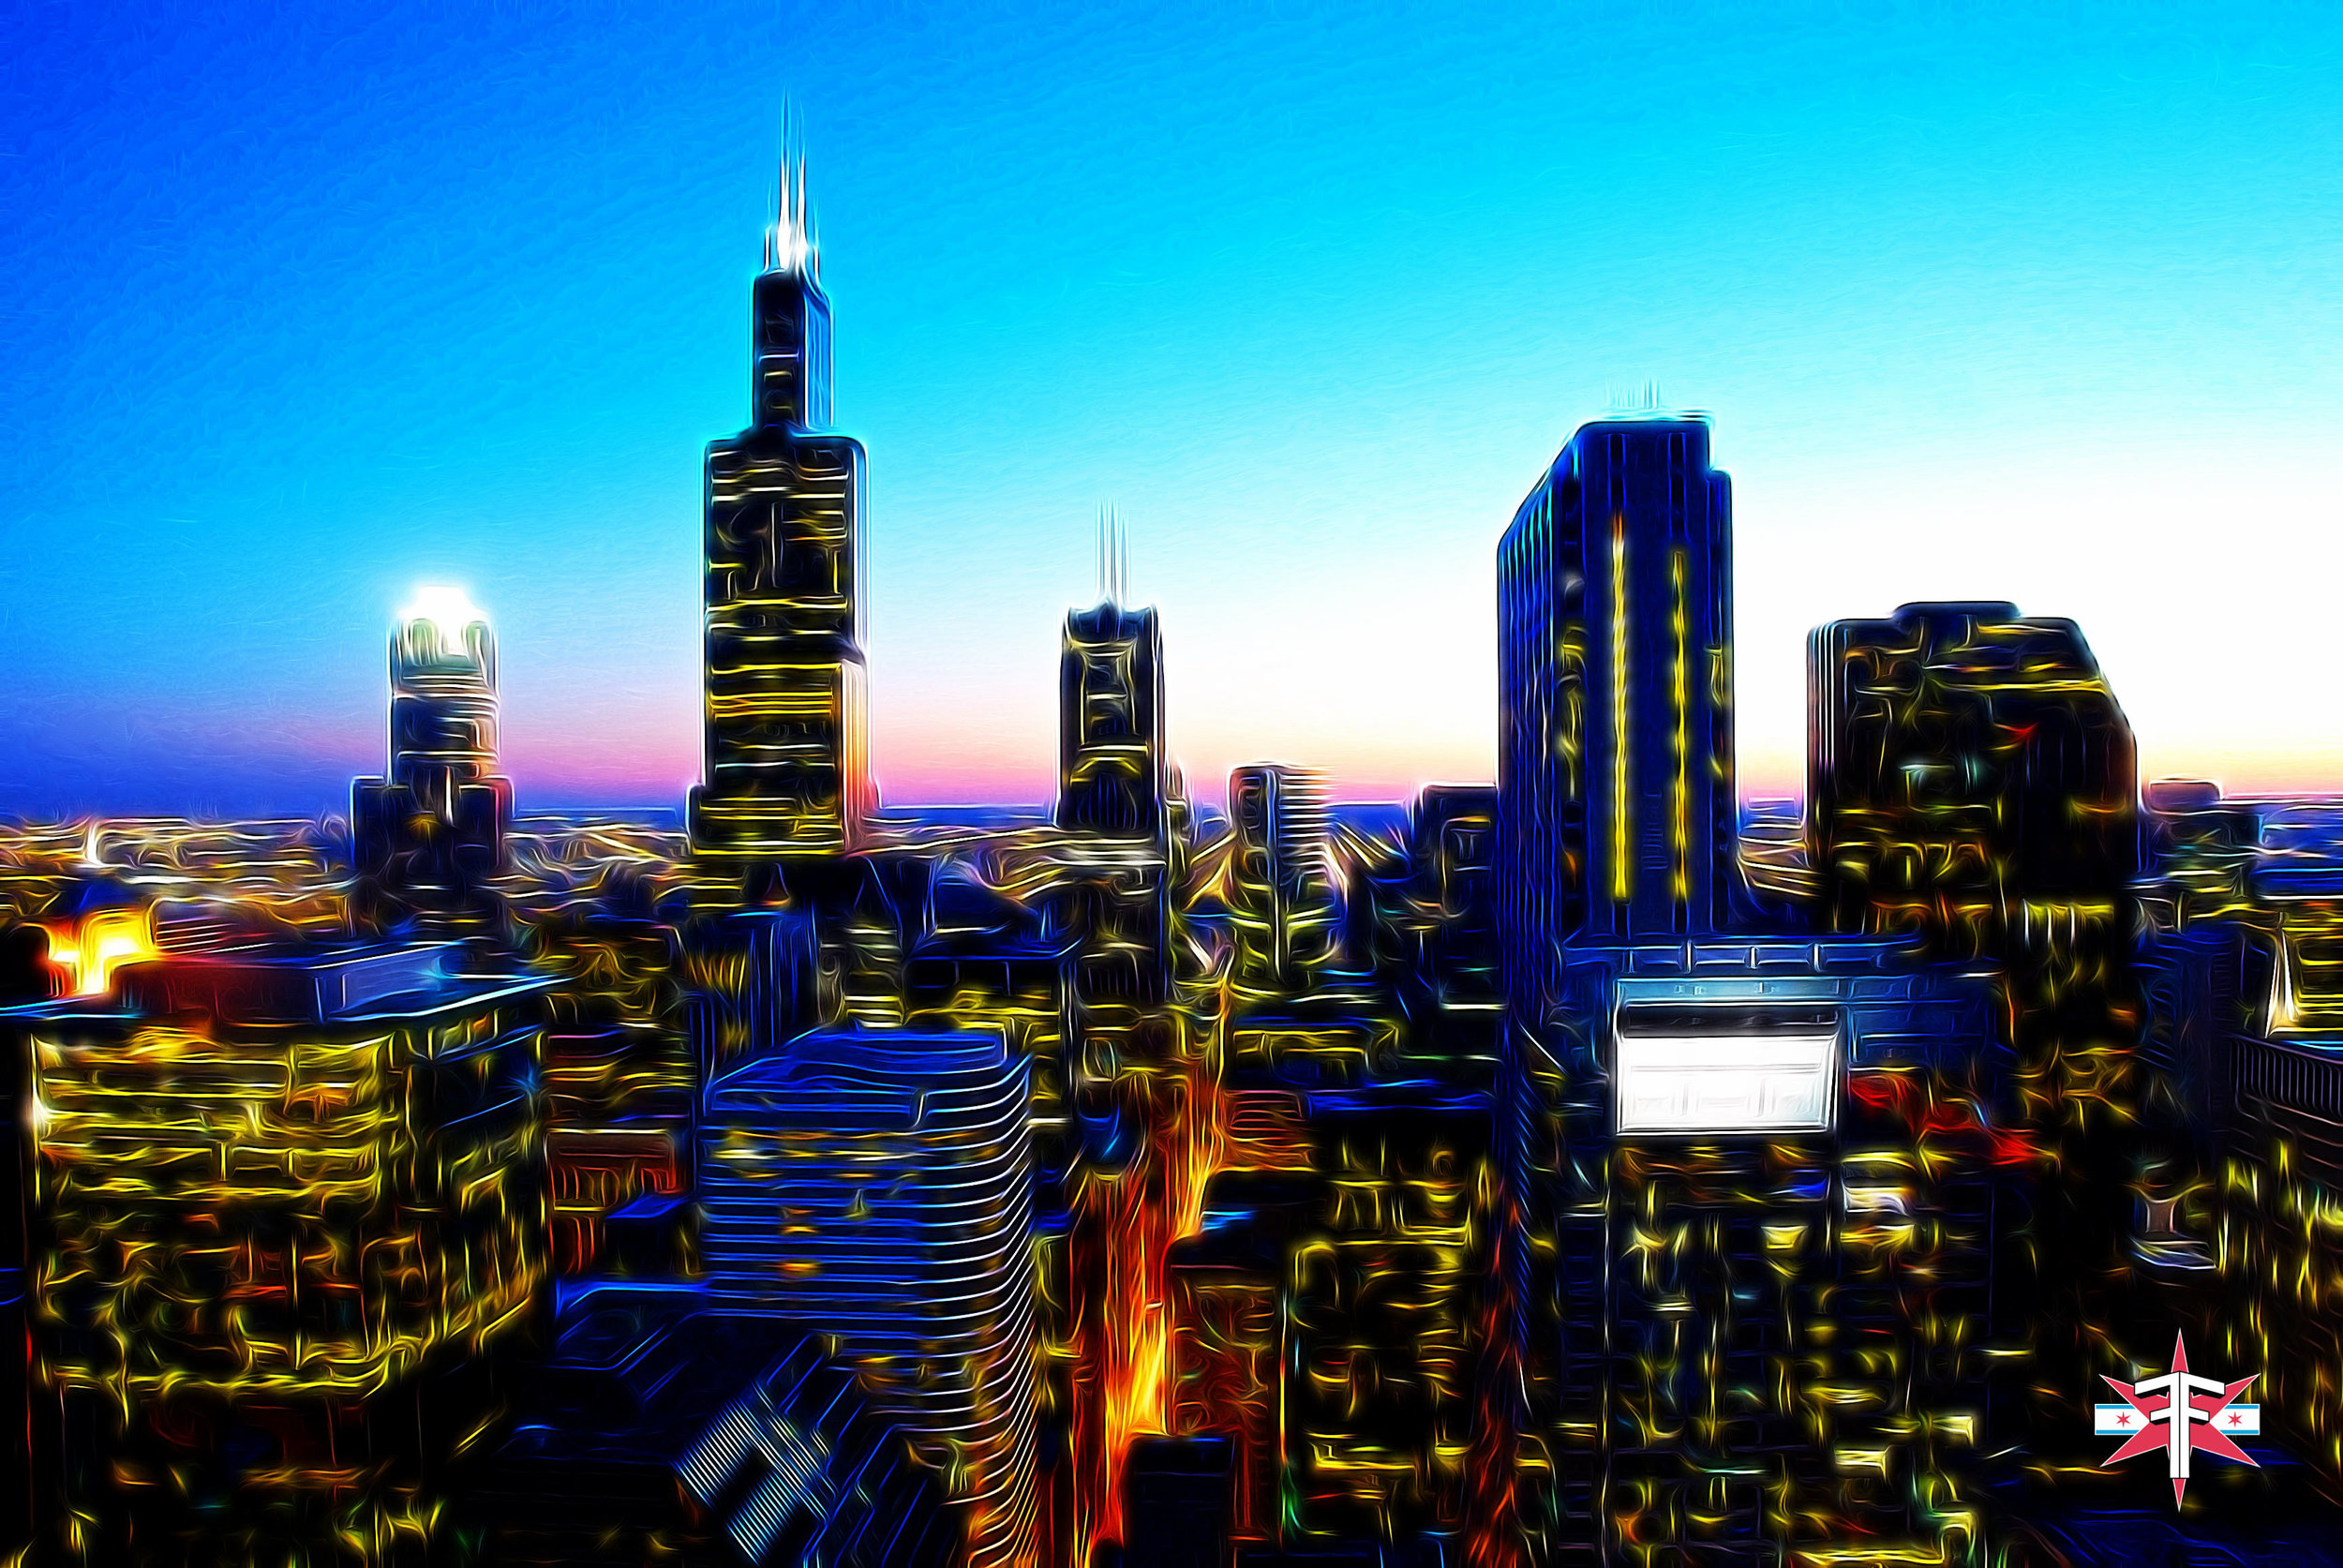 chicago art abstract eric formato photography color travel cityscape architecture saturated citycapes bright vibrant artistic-53.jpg